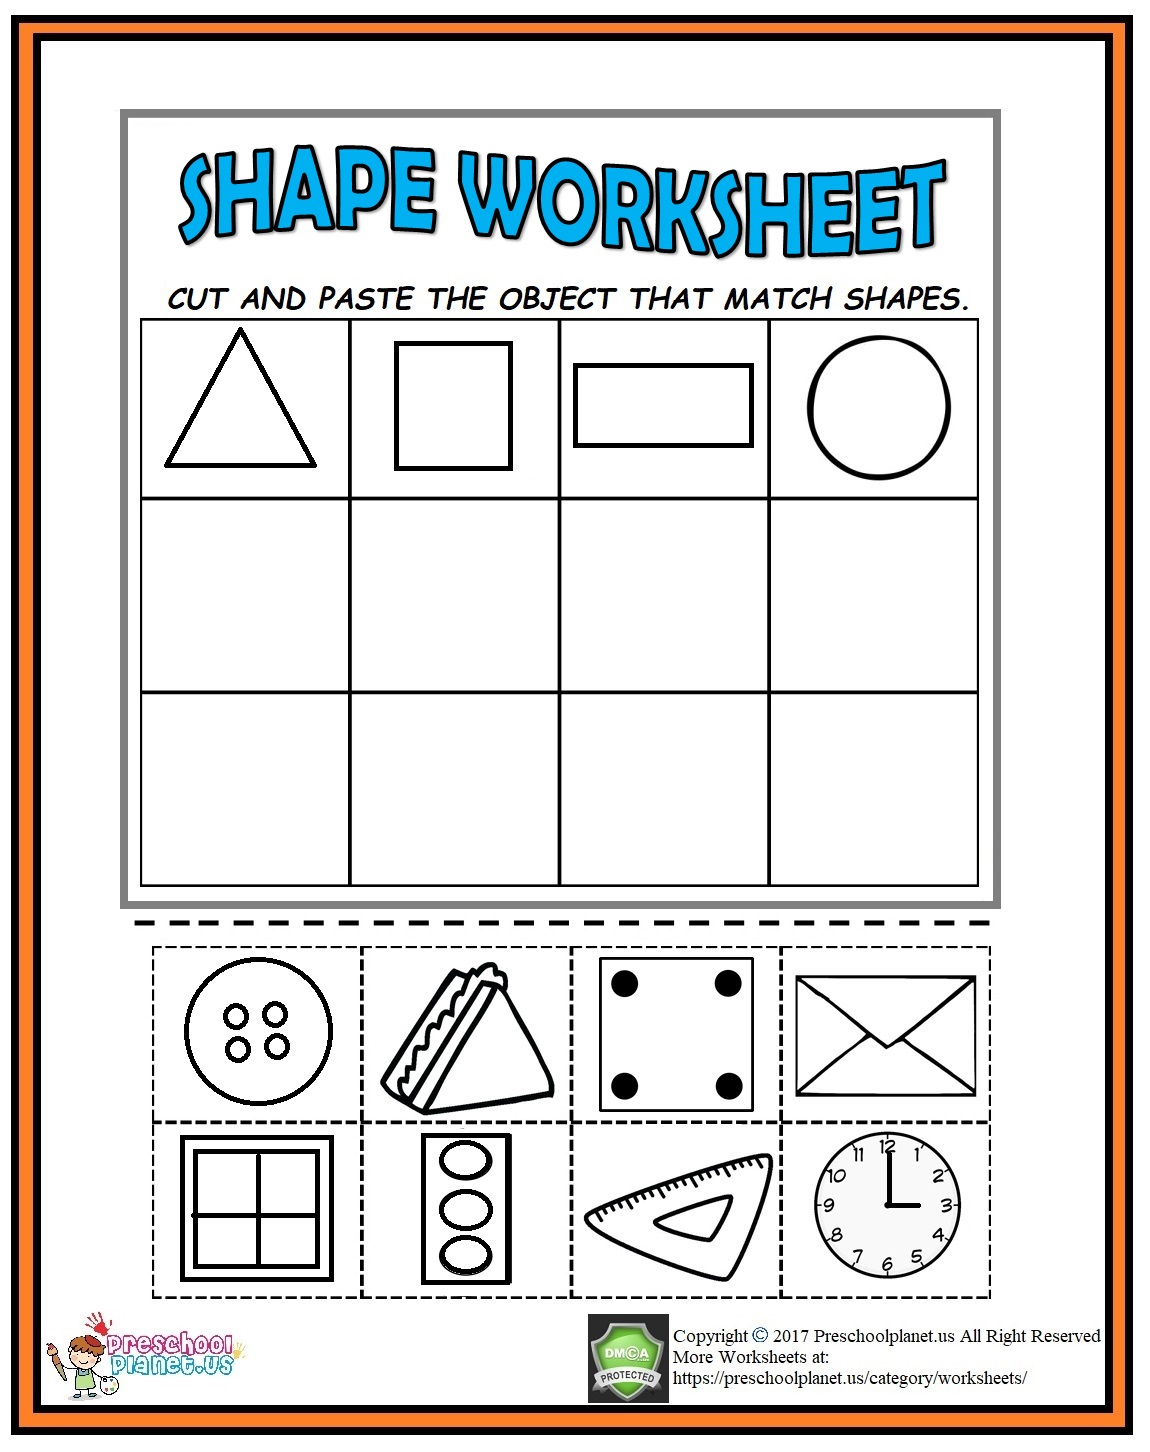 Cut And Paste Worksheets Transportation